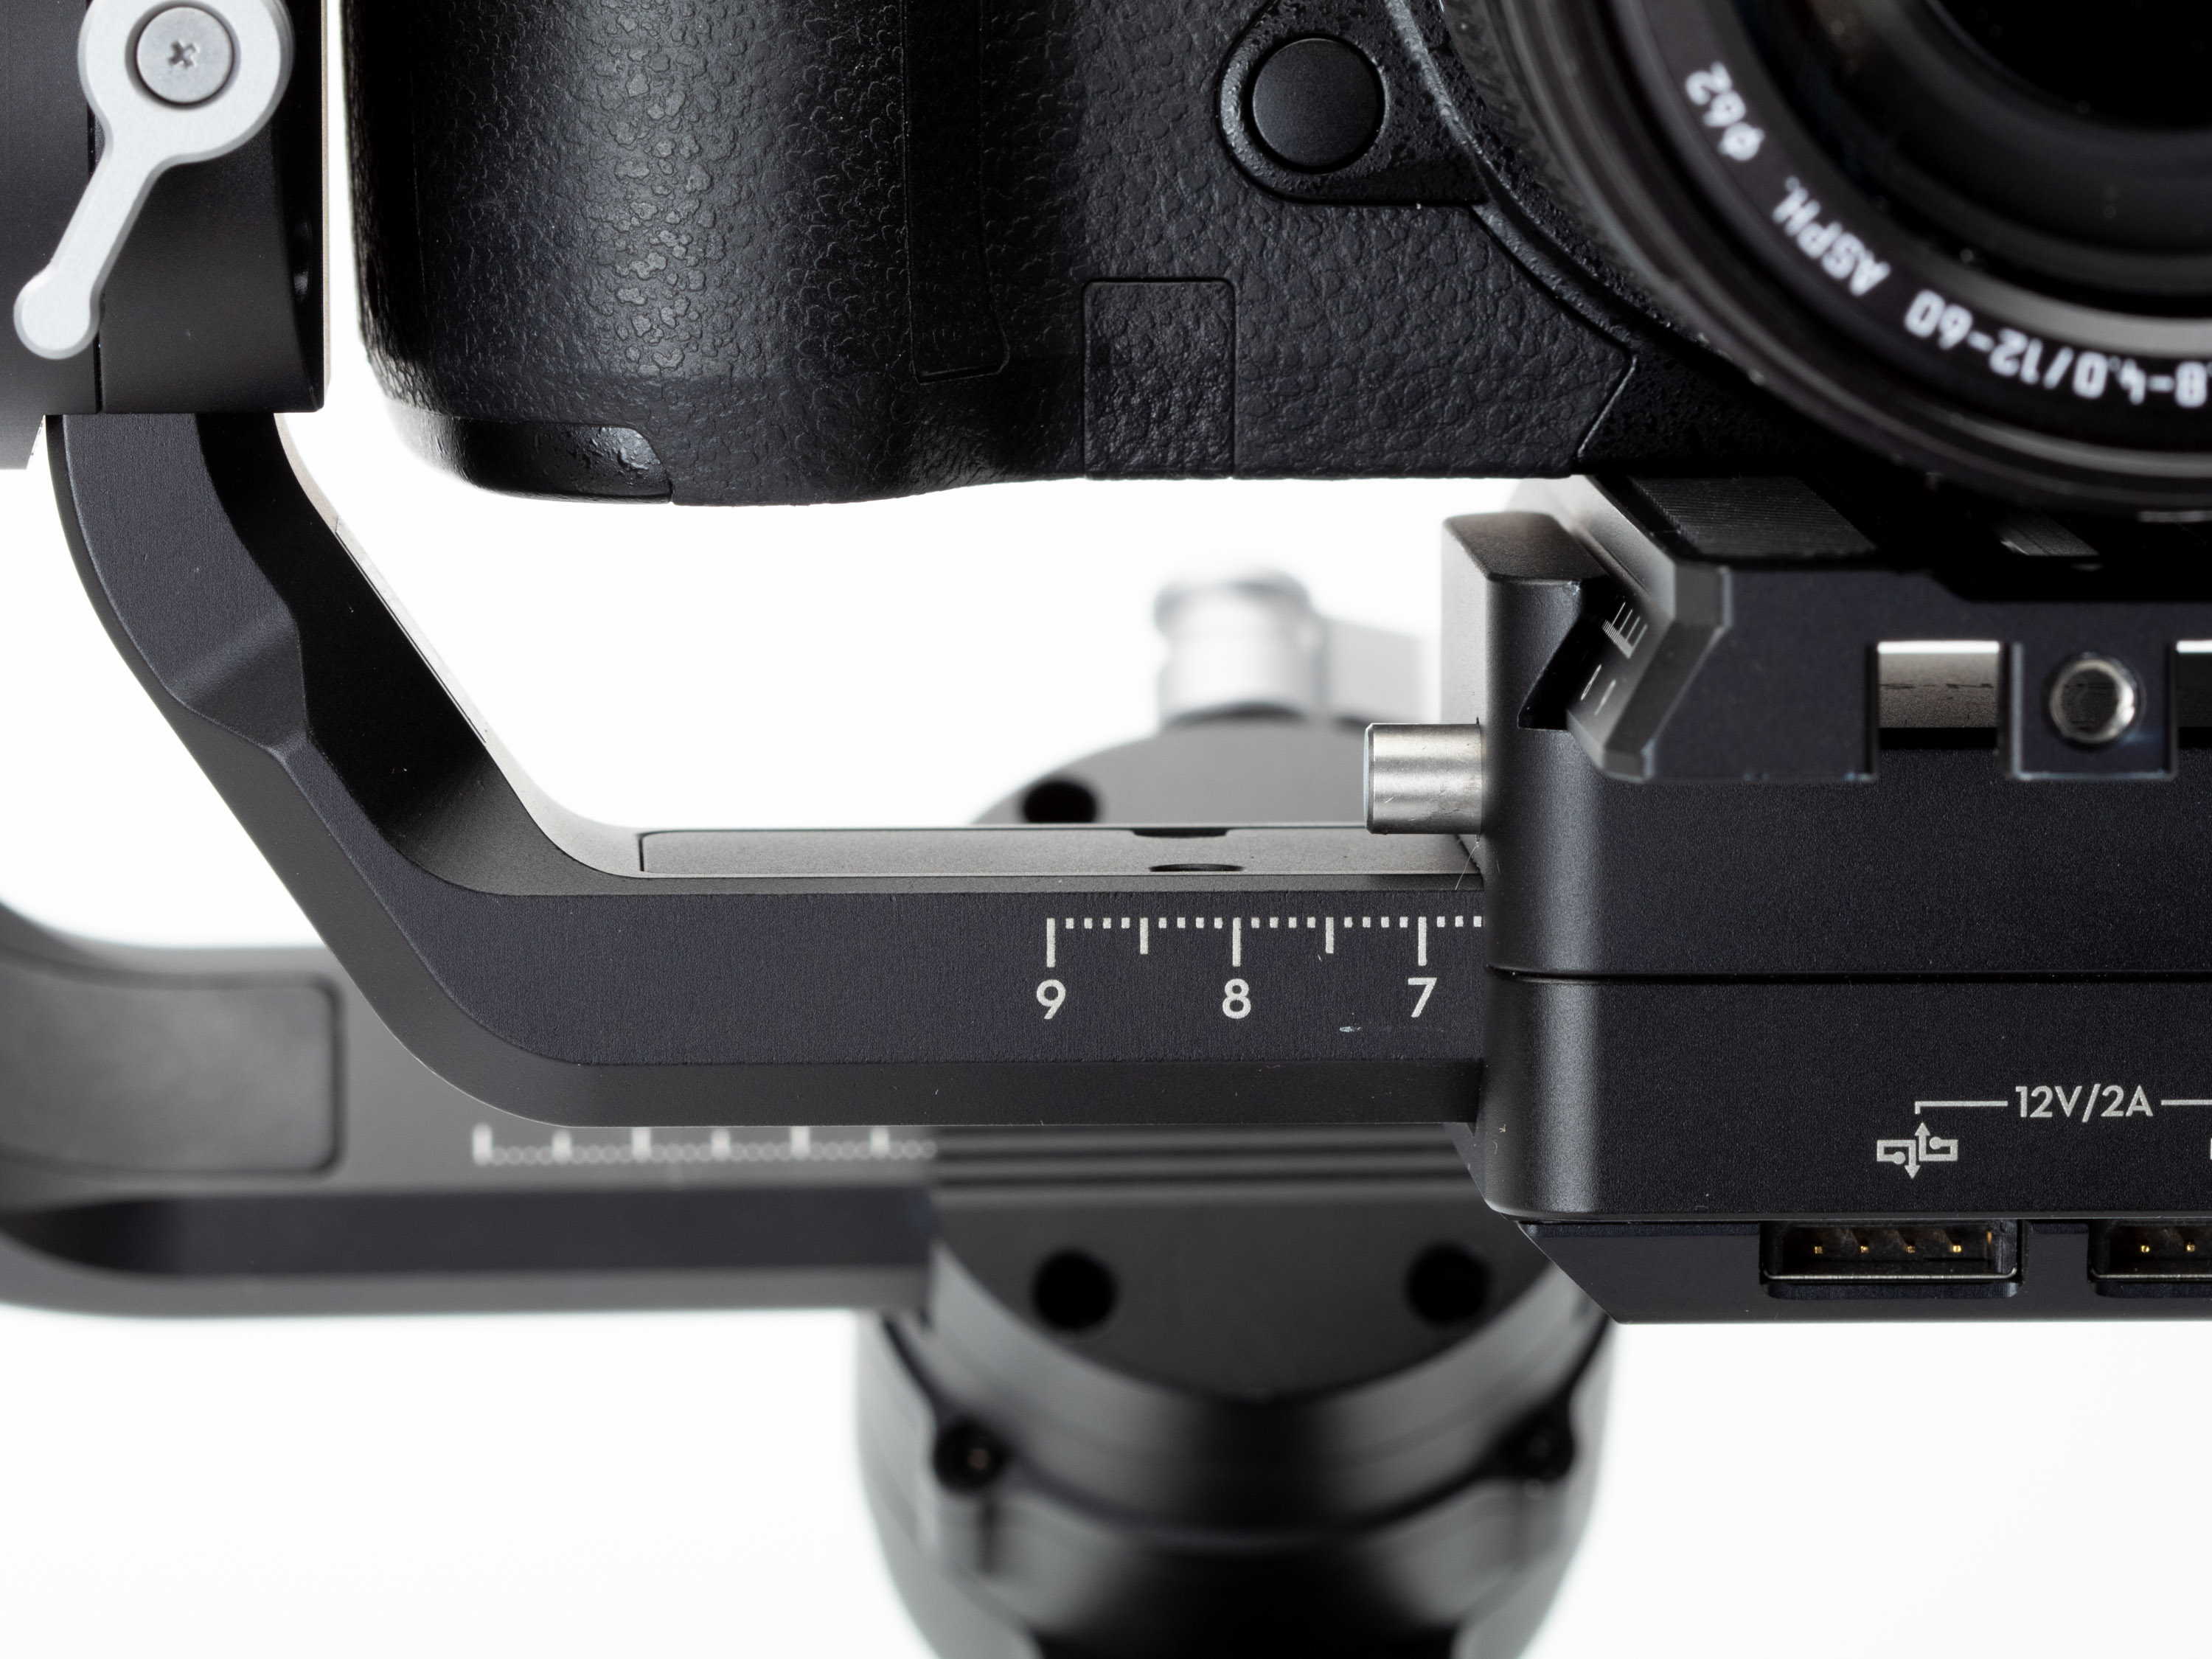 Review: DJI Ronin-S gimbal stabilization system: Digital